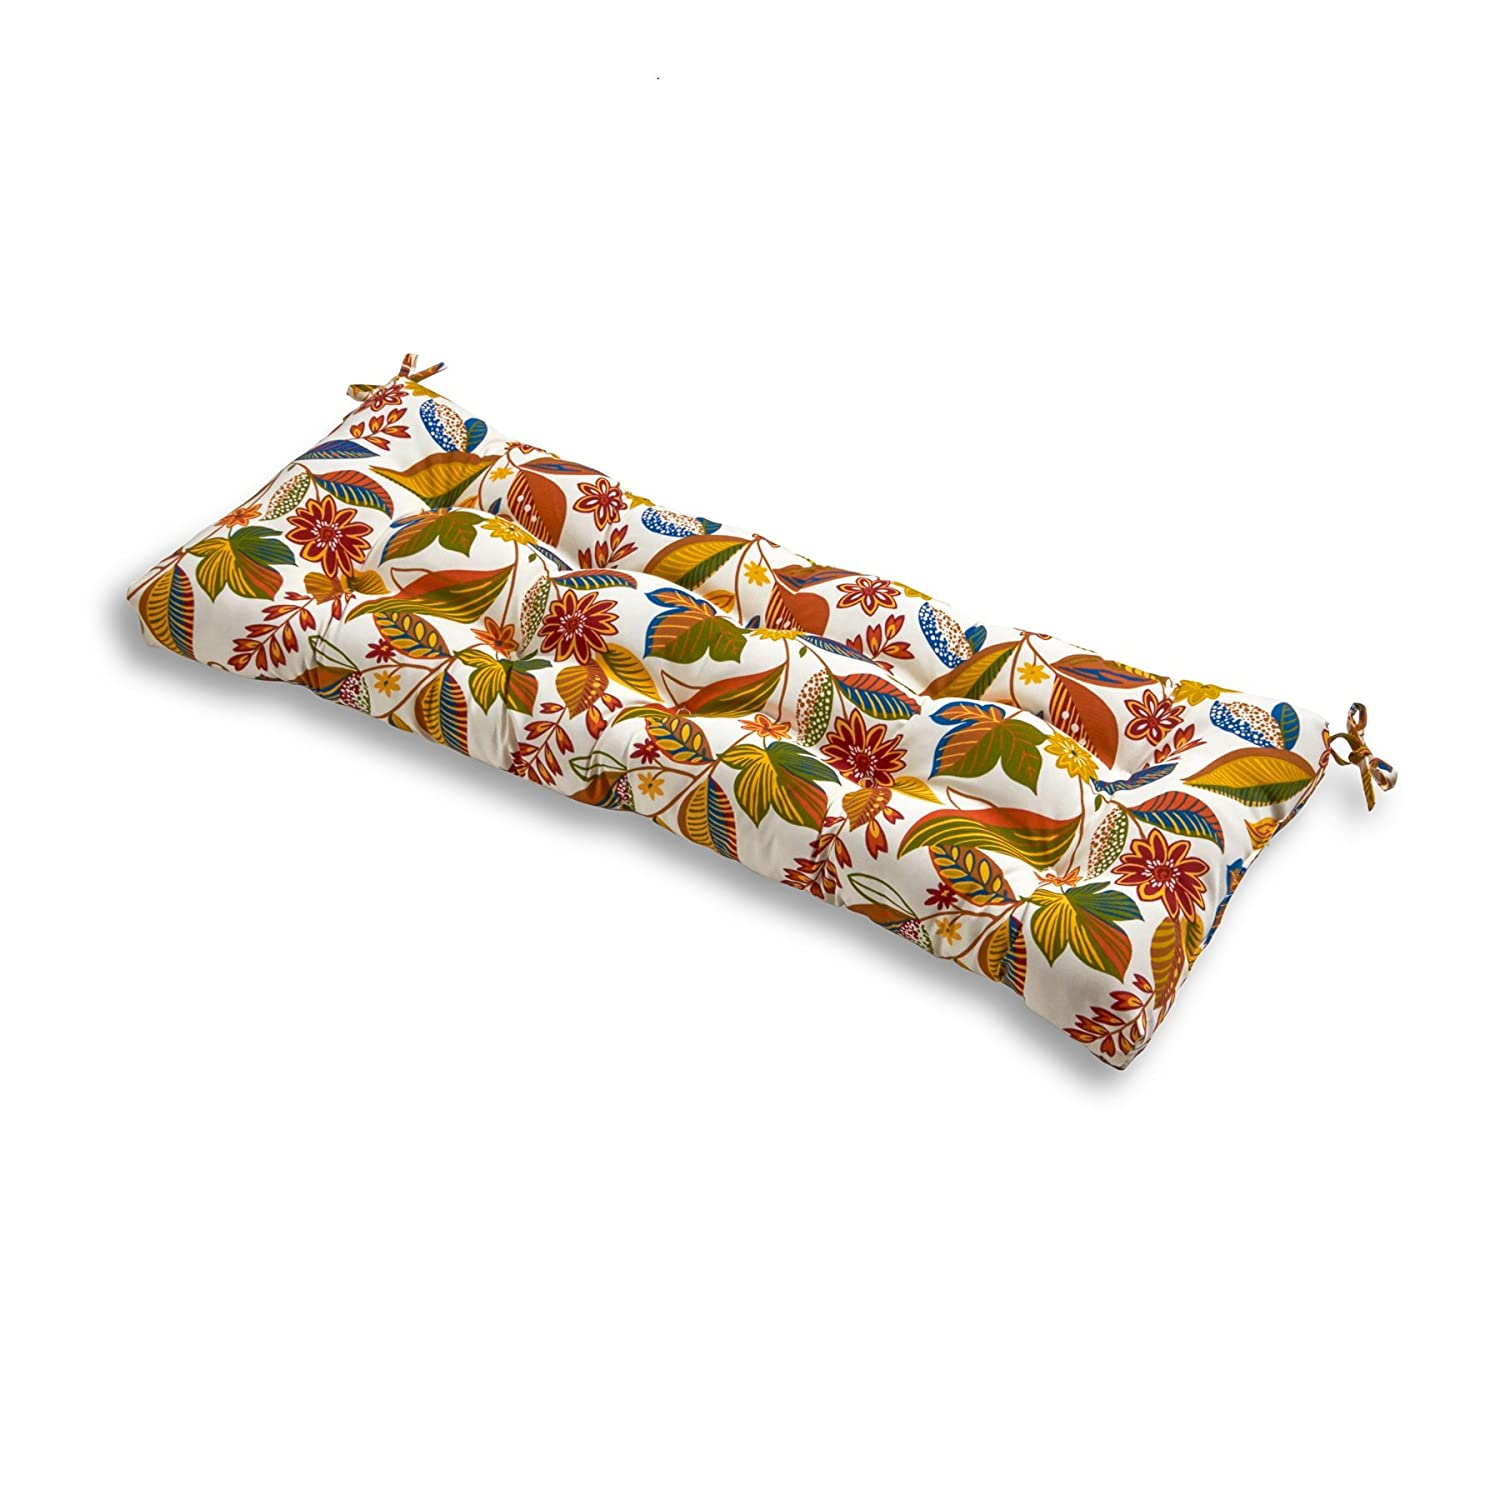 Amazon.com: Greendale Home Fashions Indoor/Outdoor Bench Cushion ...